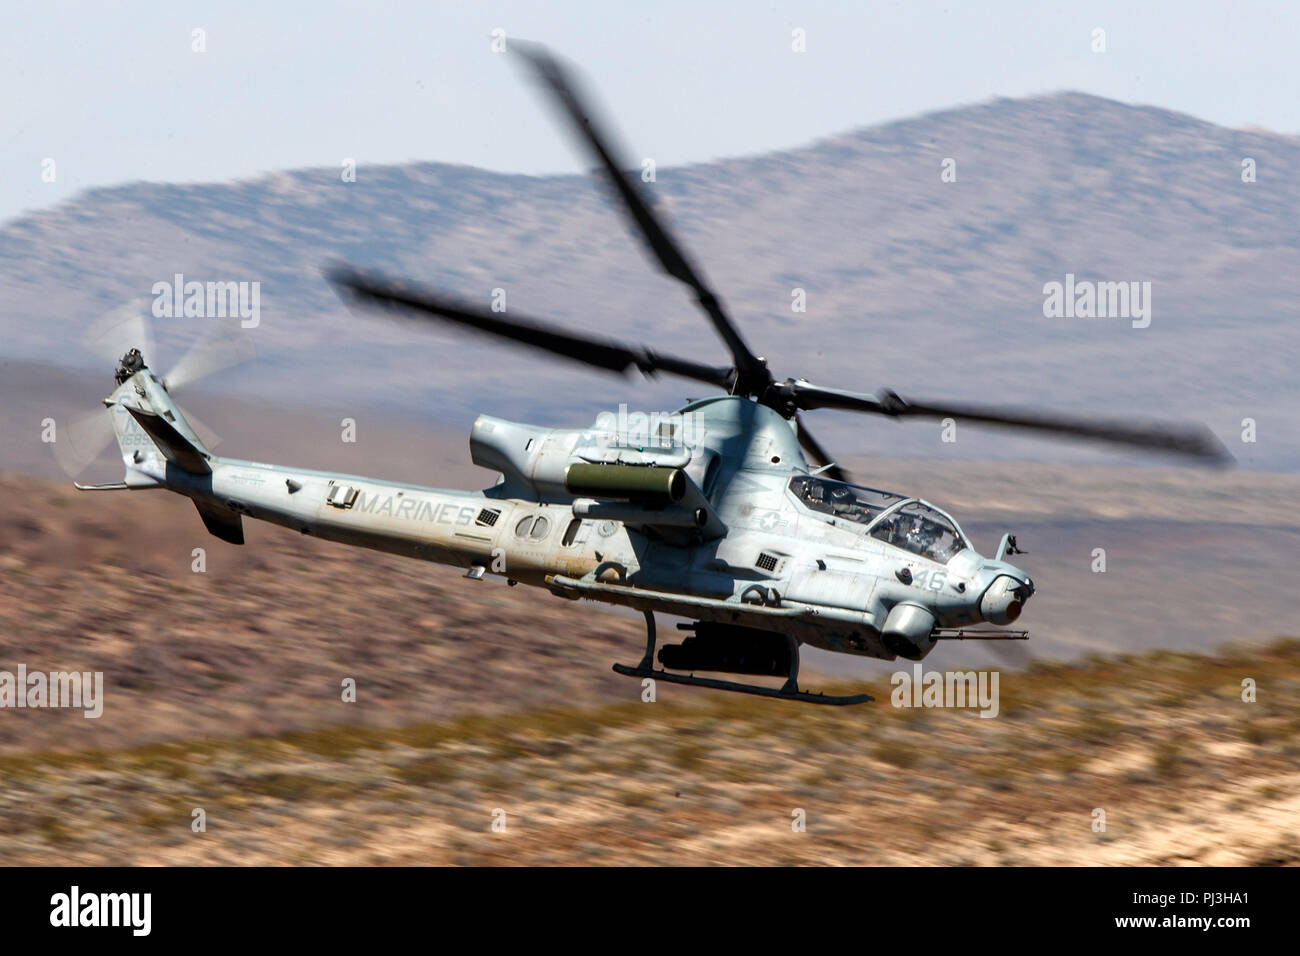 United States Marines Corps Bell AH-1Z Viper (SN 168529) flies low level on the Jedi Transition through Star Wars Canyon / Rainbow Canyon, Death Valley National Park, Panamint Springs, California, United States of America Stock Photo